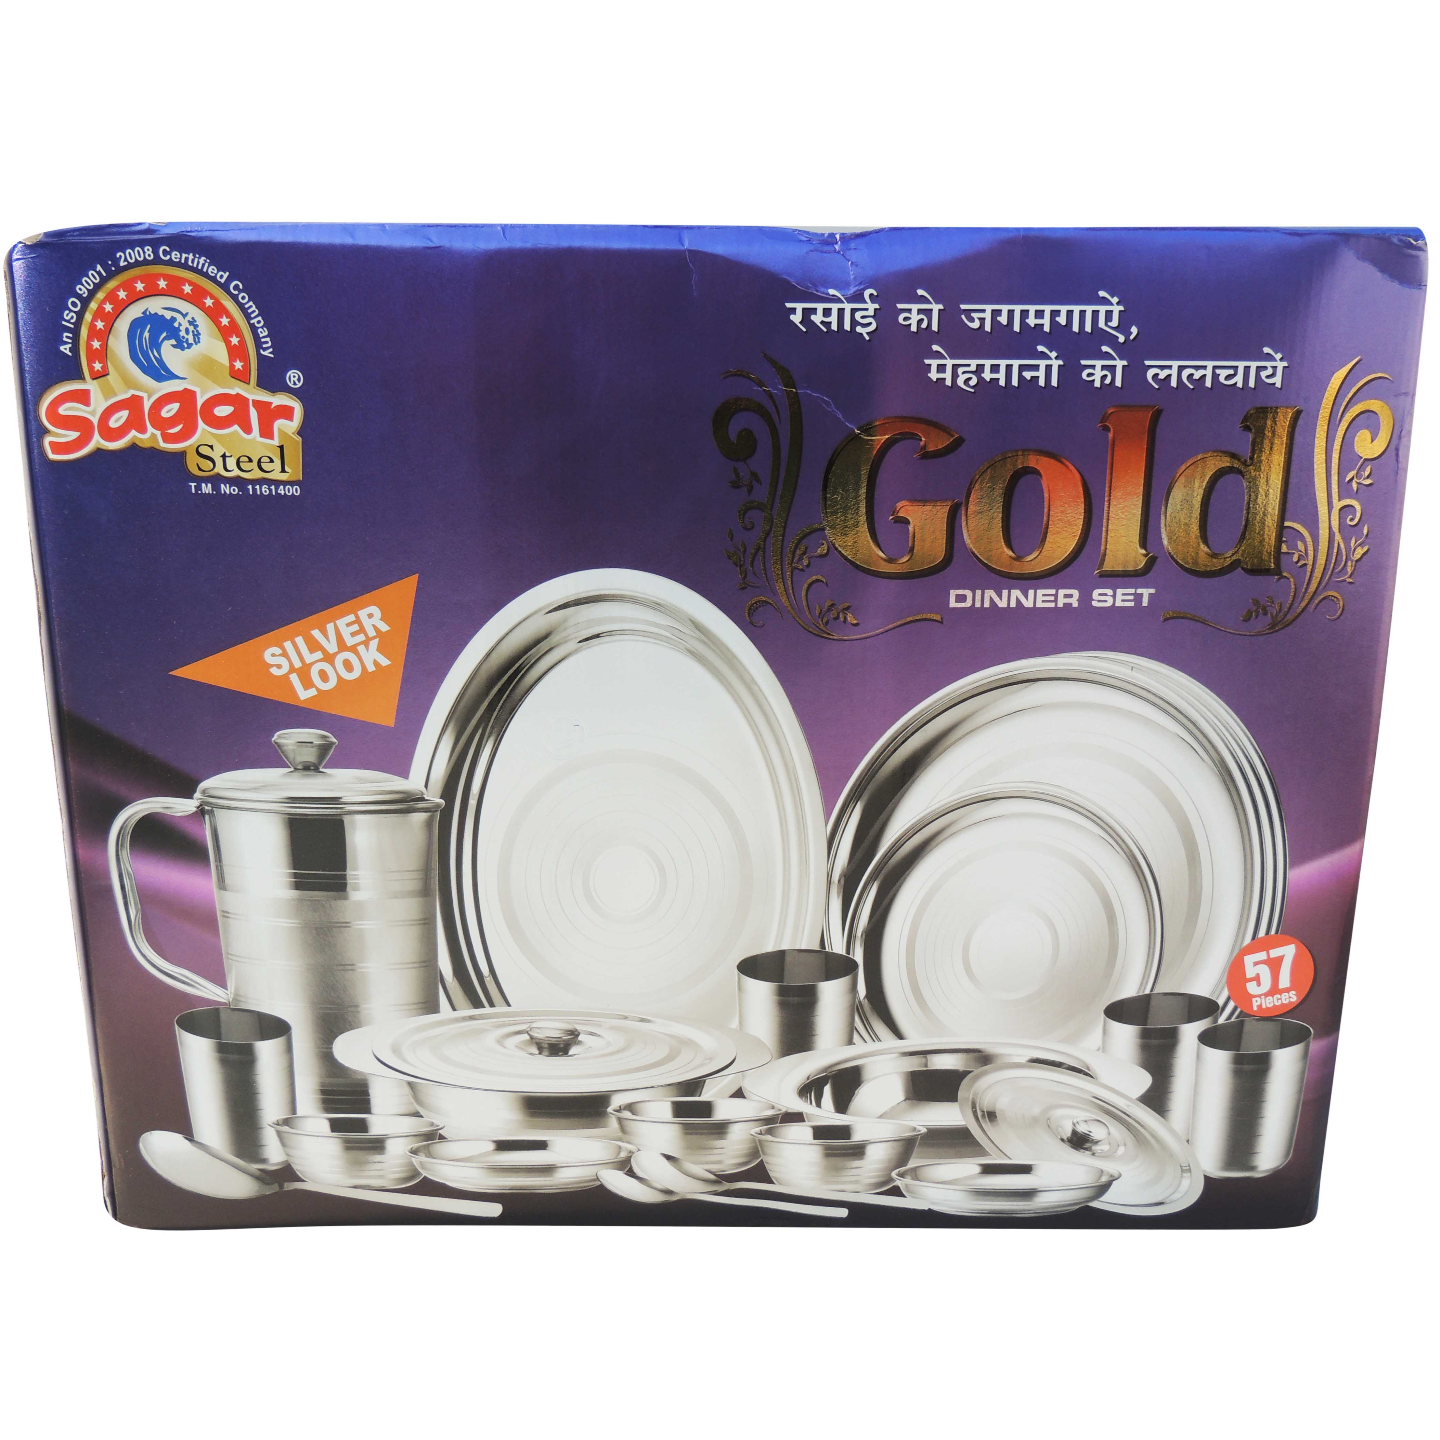 Steel Dinner Set Gold 57 pcs (S063 C)